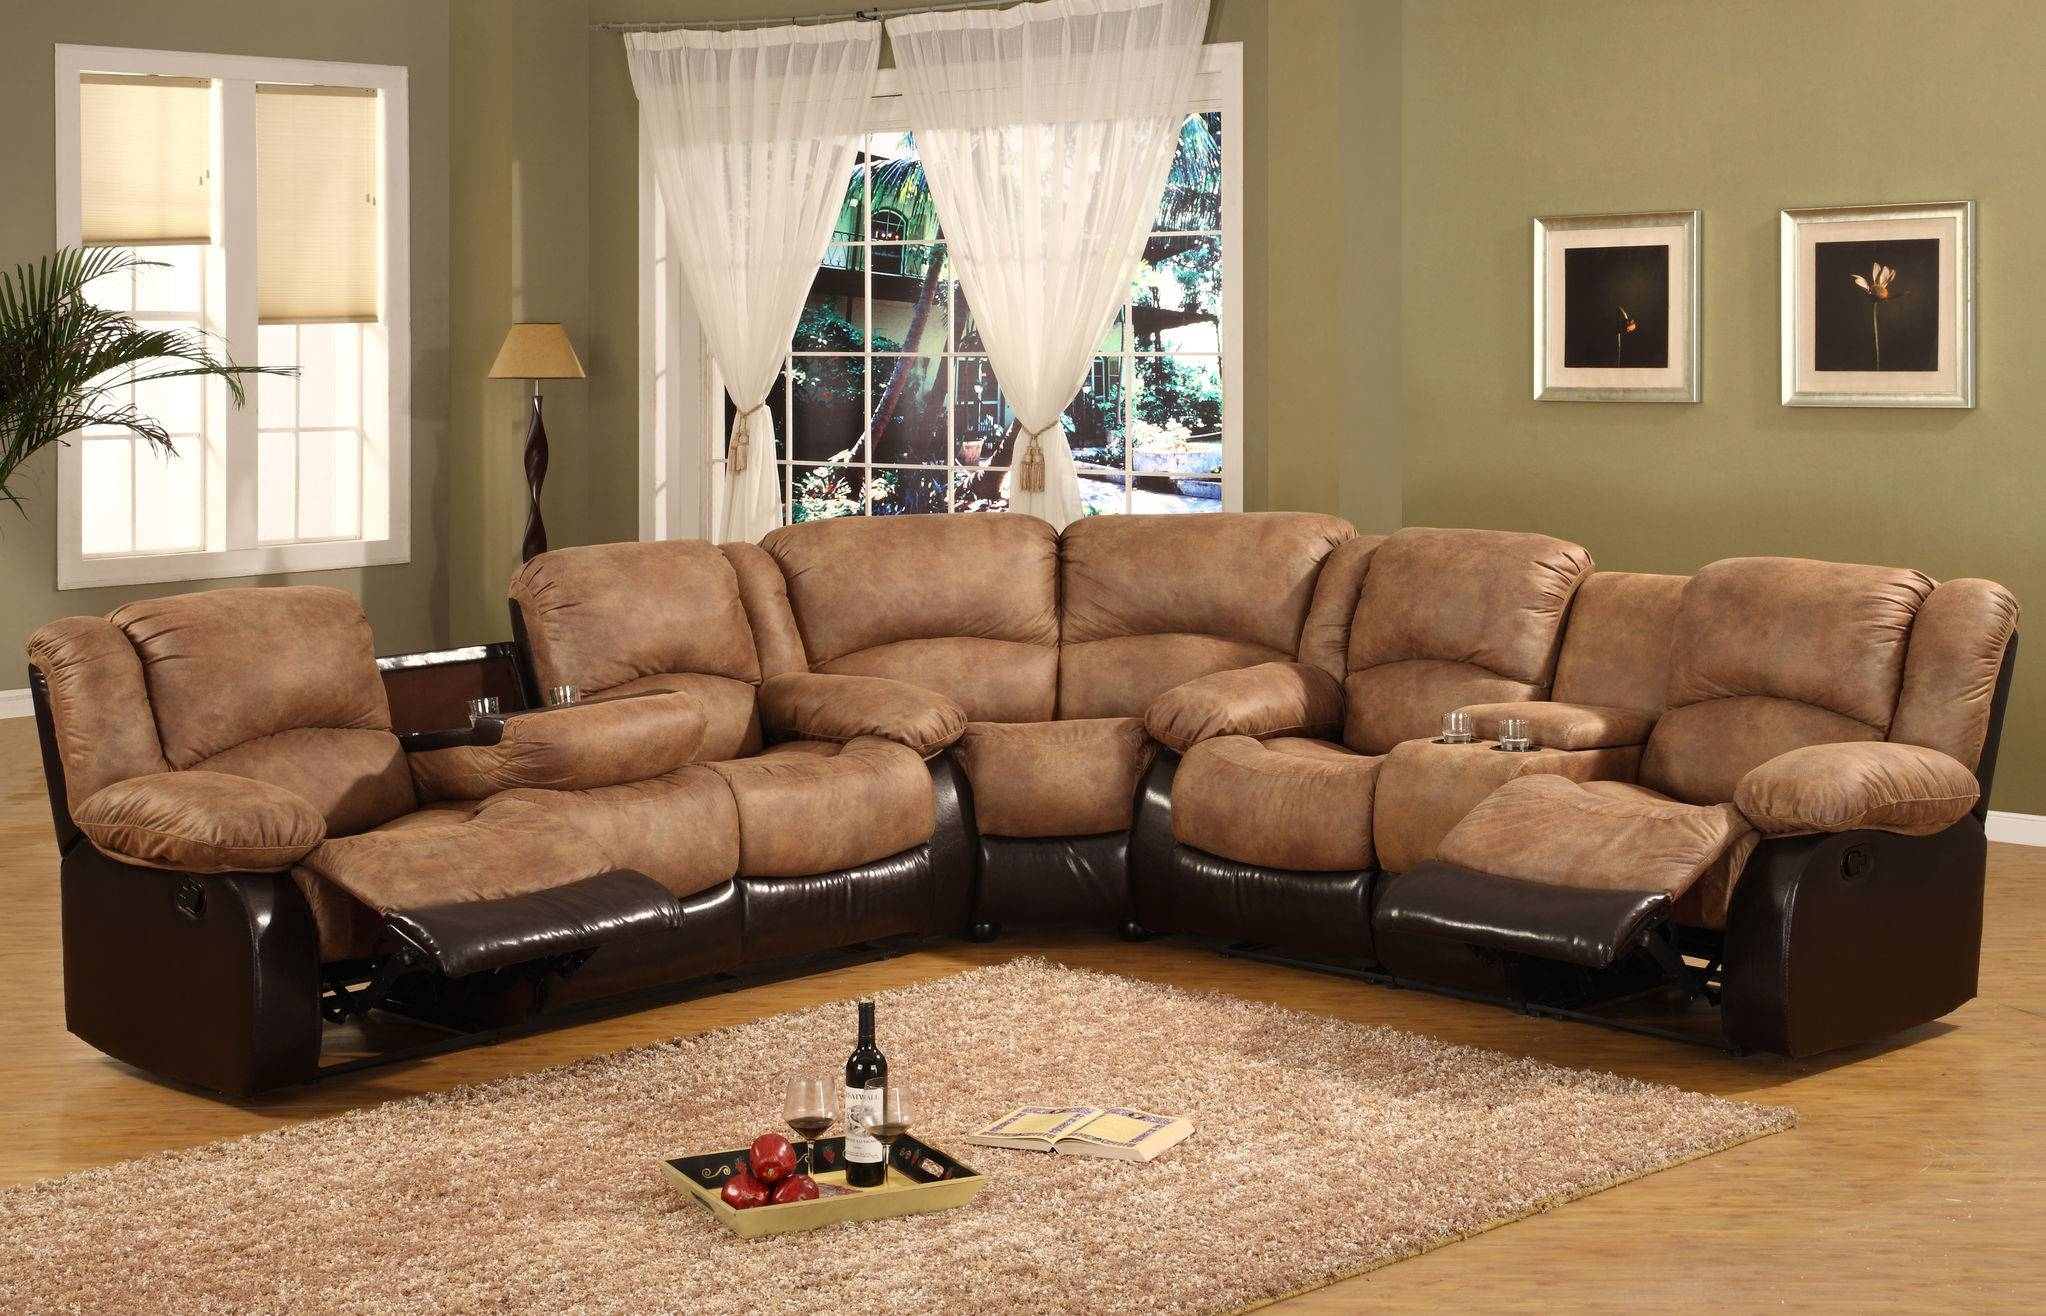 Camel Fabric Sectional Sofa With Dark Brown Faux Leather Base in Camel Colored Sectional Sofa (Image 12 of 30)